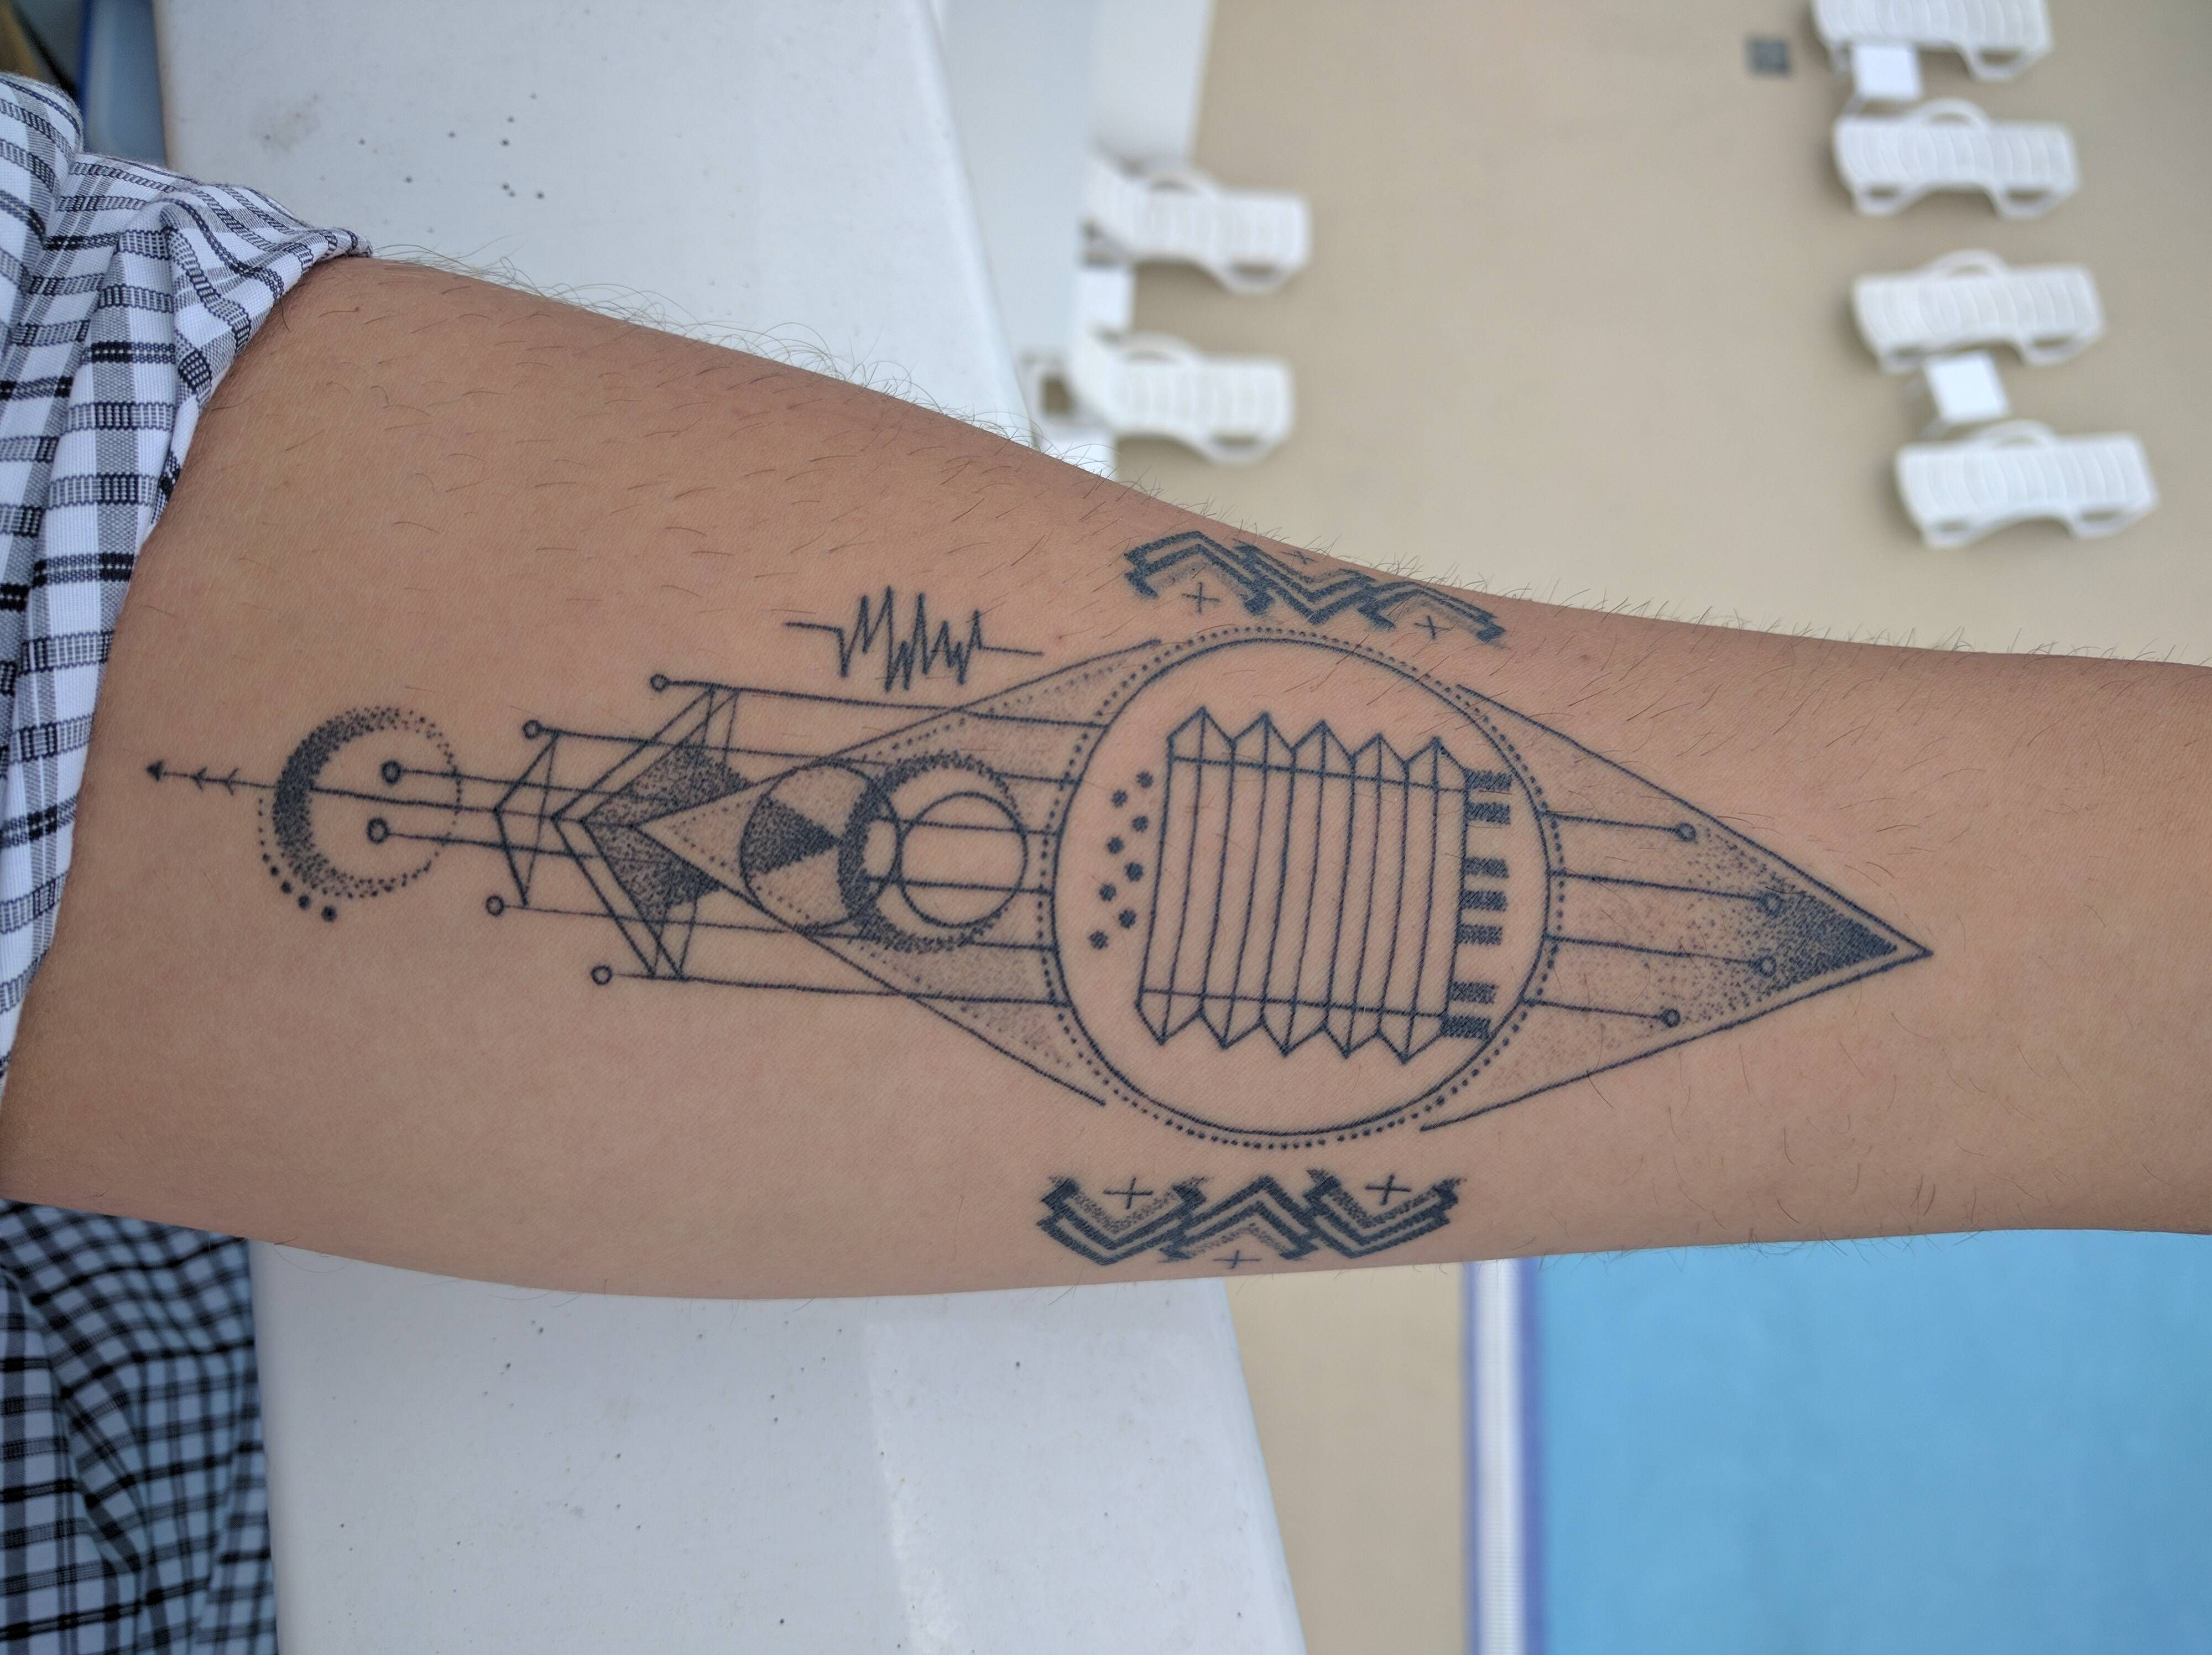 My first tattoo with symbols based on instruments my